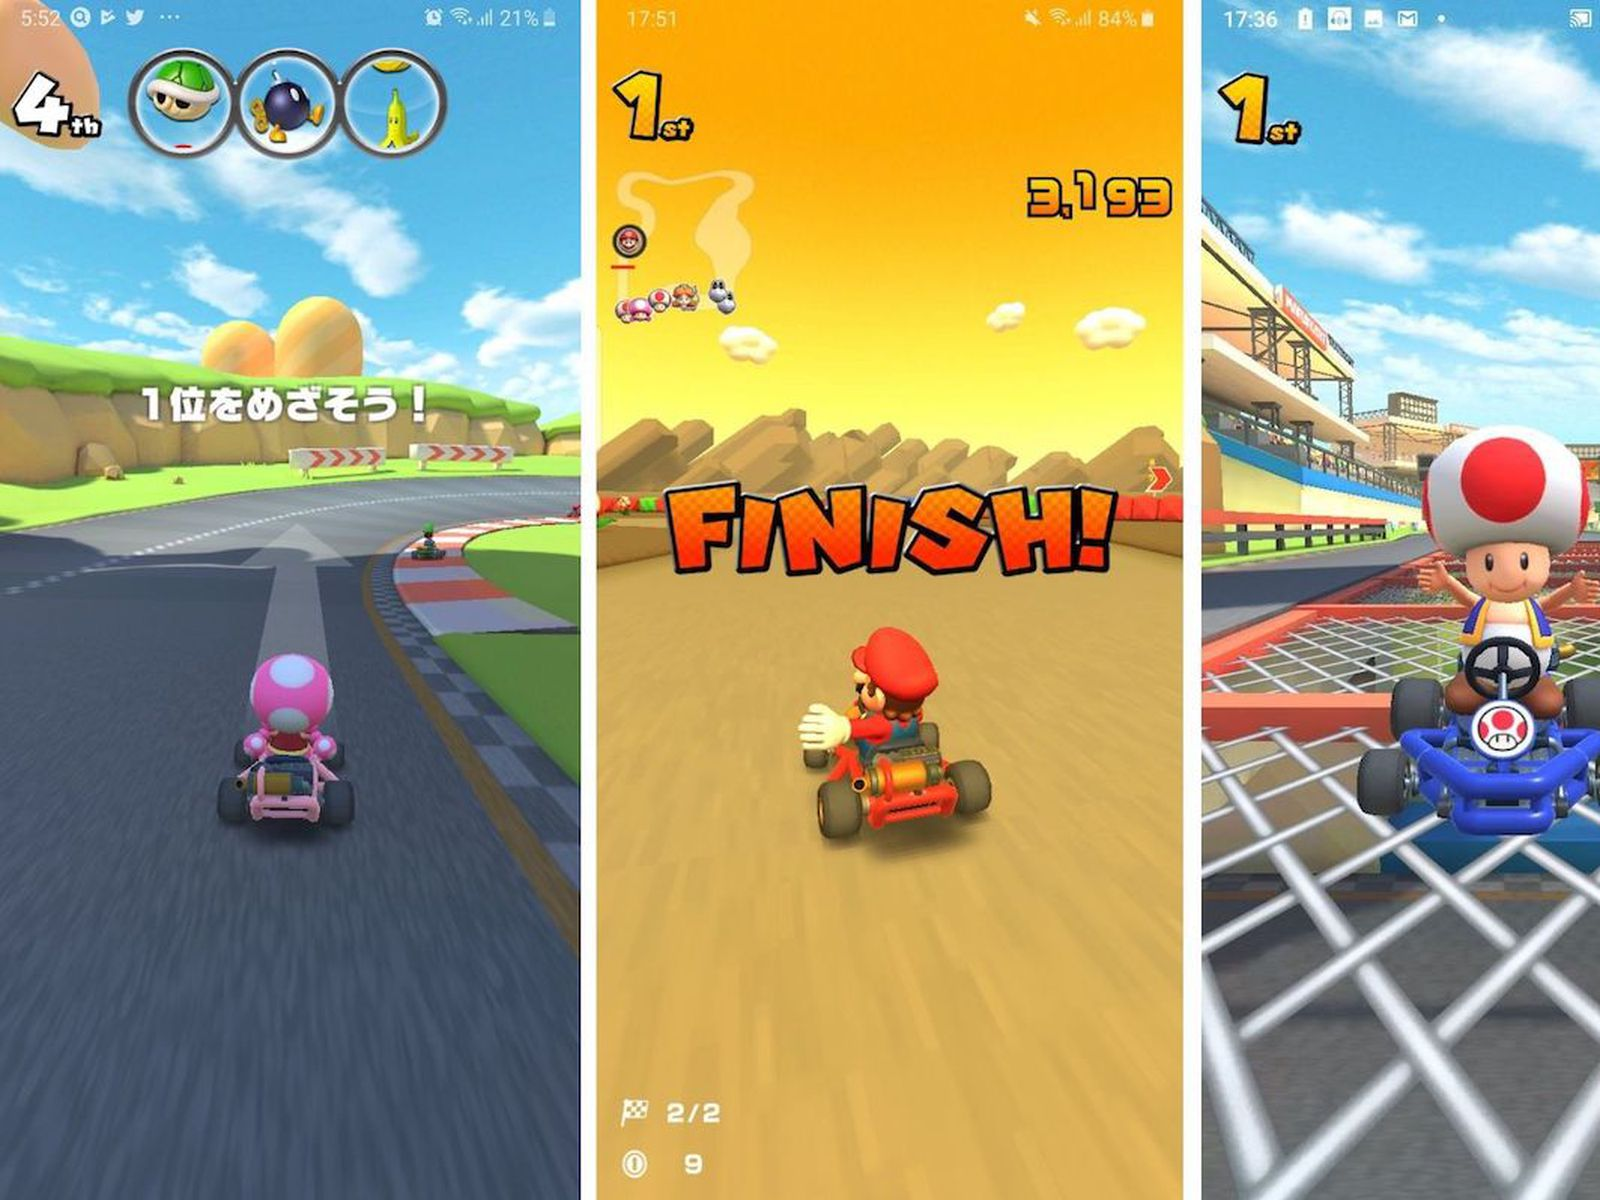 Mario Kart Tour Gameplay Revealed In New Images And Video Shared